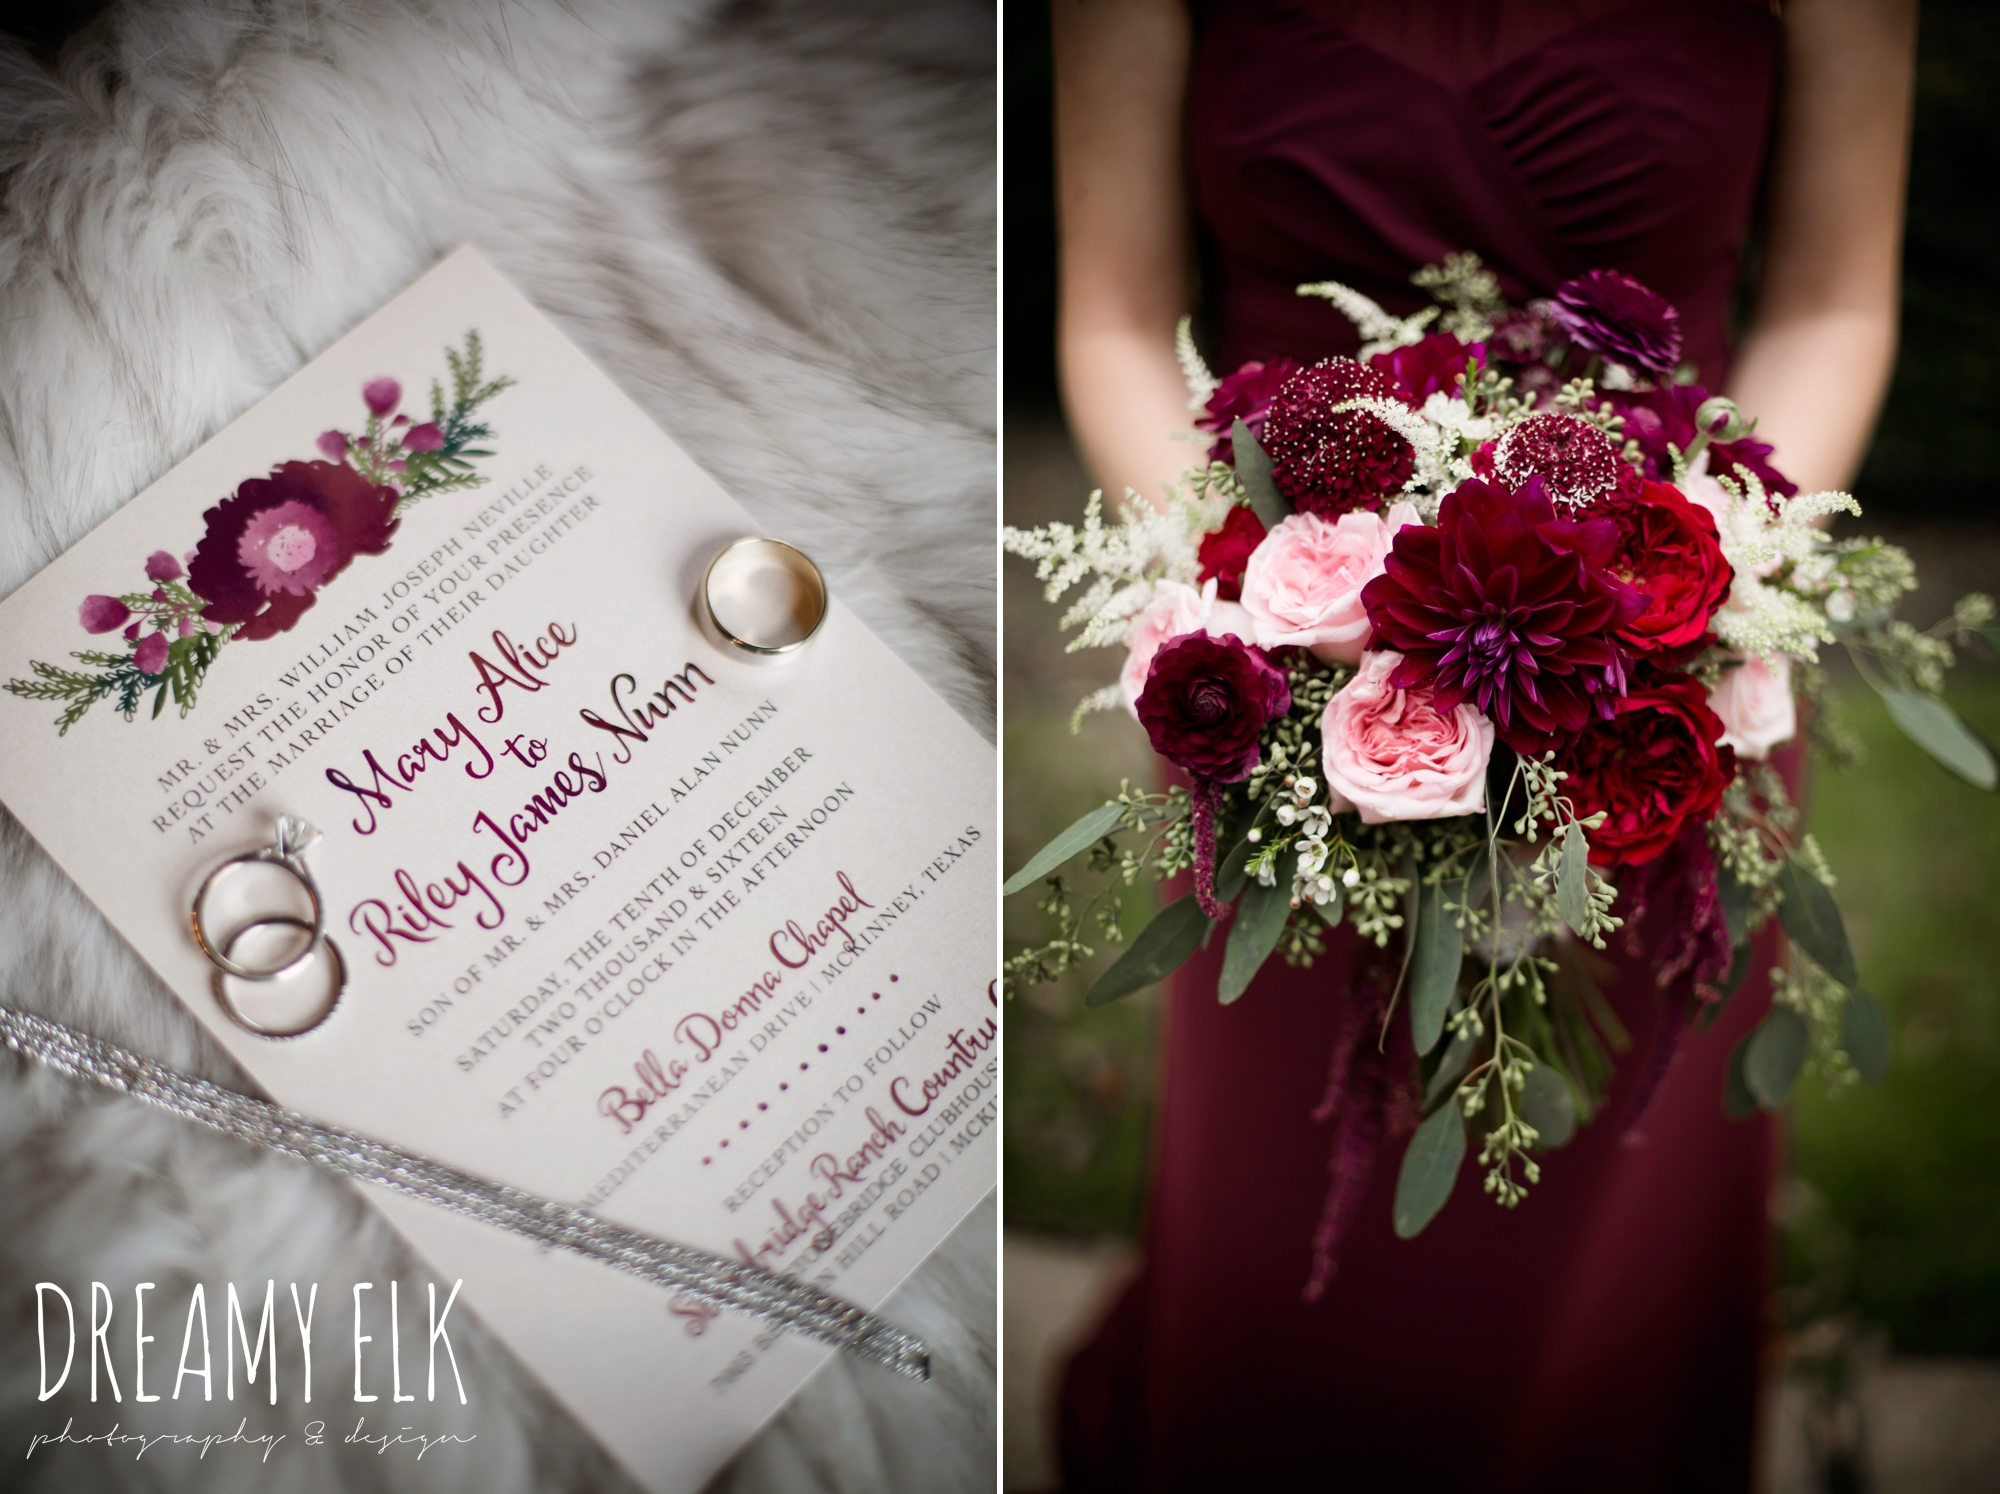 pink maroon winter wedding bouquet, platinum petals, mix and match long maroon alfred angelo bridesmaid dresses, wedding invitation, bridesmaid bouquet, maroon december winter wedding, bella donna chapel, mckinney, texas {dreamy elk photography and design}